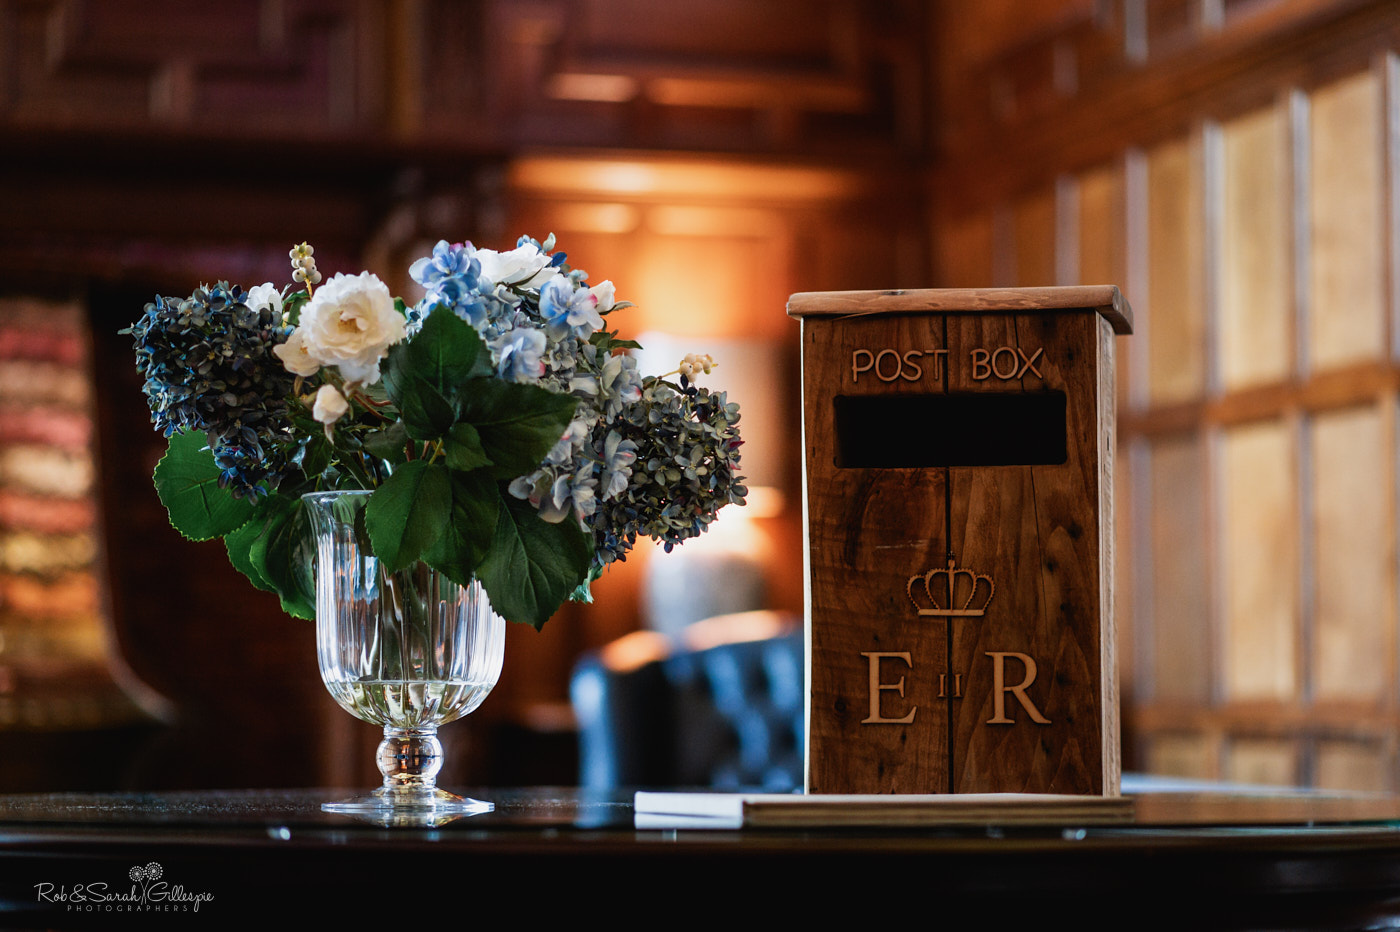 Wedding flowers and postbox at Pendrell Hall